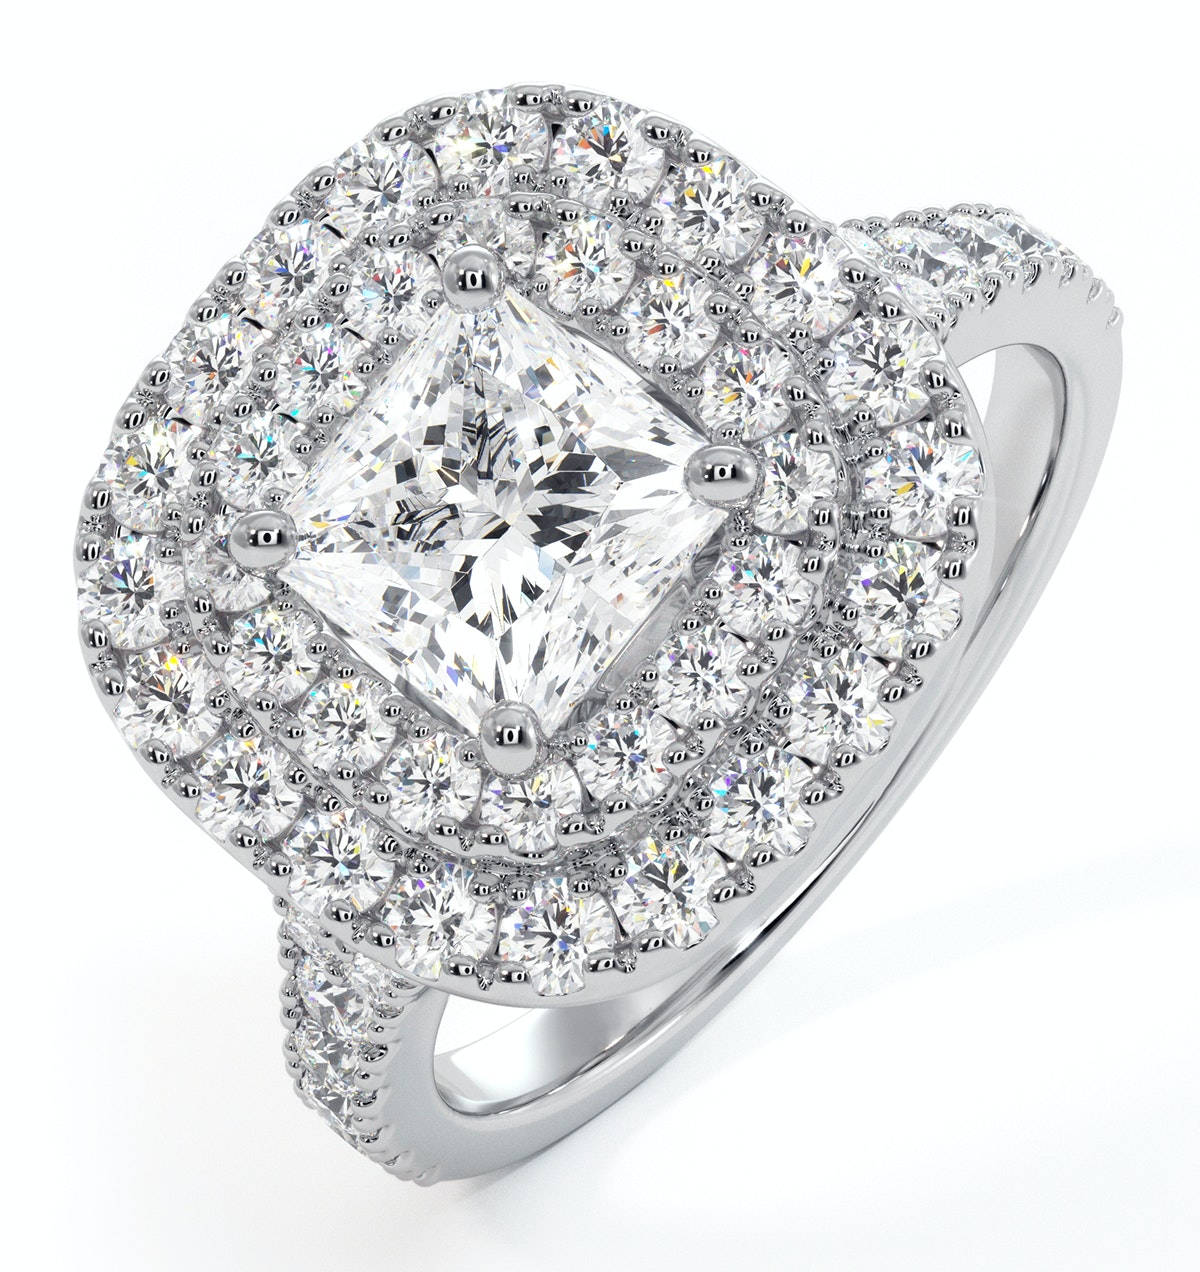 Cleopatra GIA Diamond Halo Engagement Ring in Platinum 1.85ct G/SI2